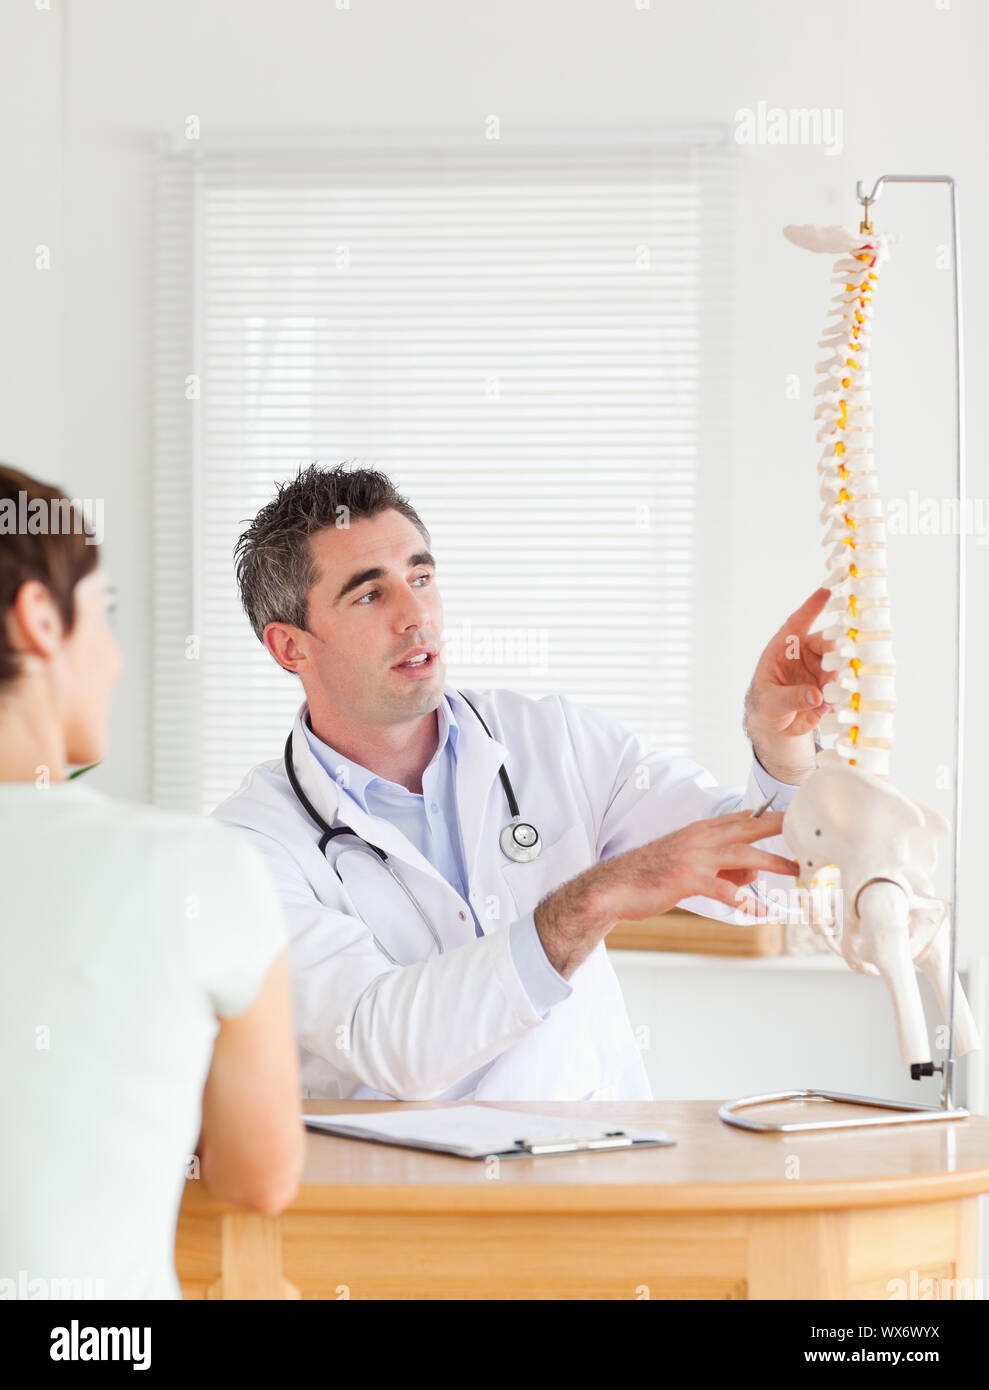 Doctor showing a female patient a part of a spine in a room Stock Photo